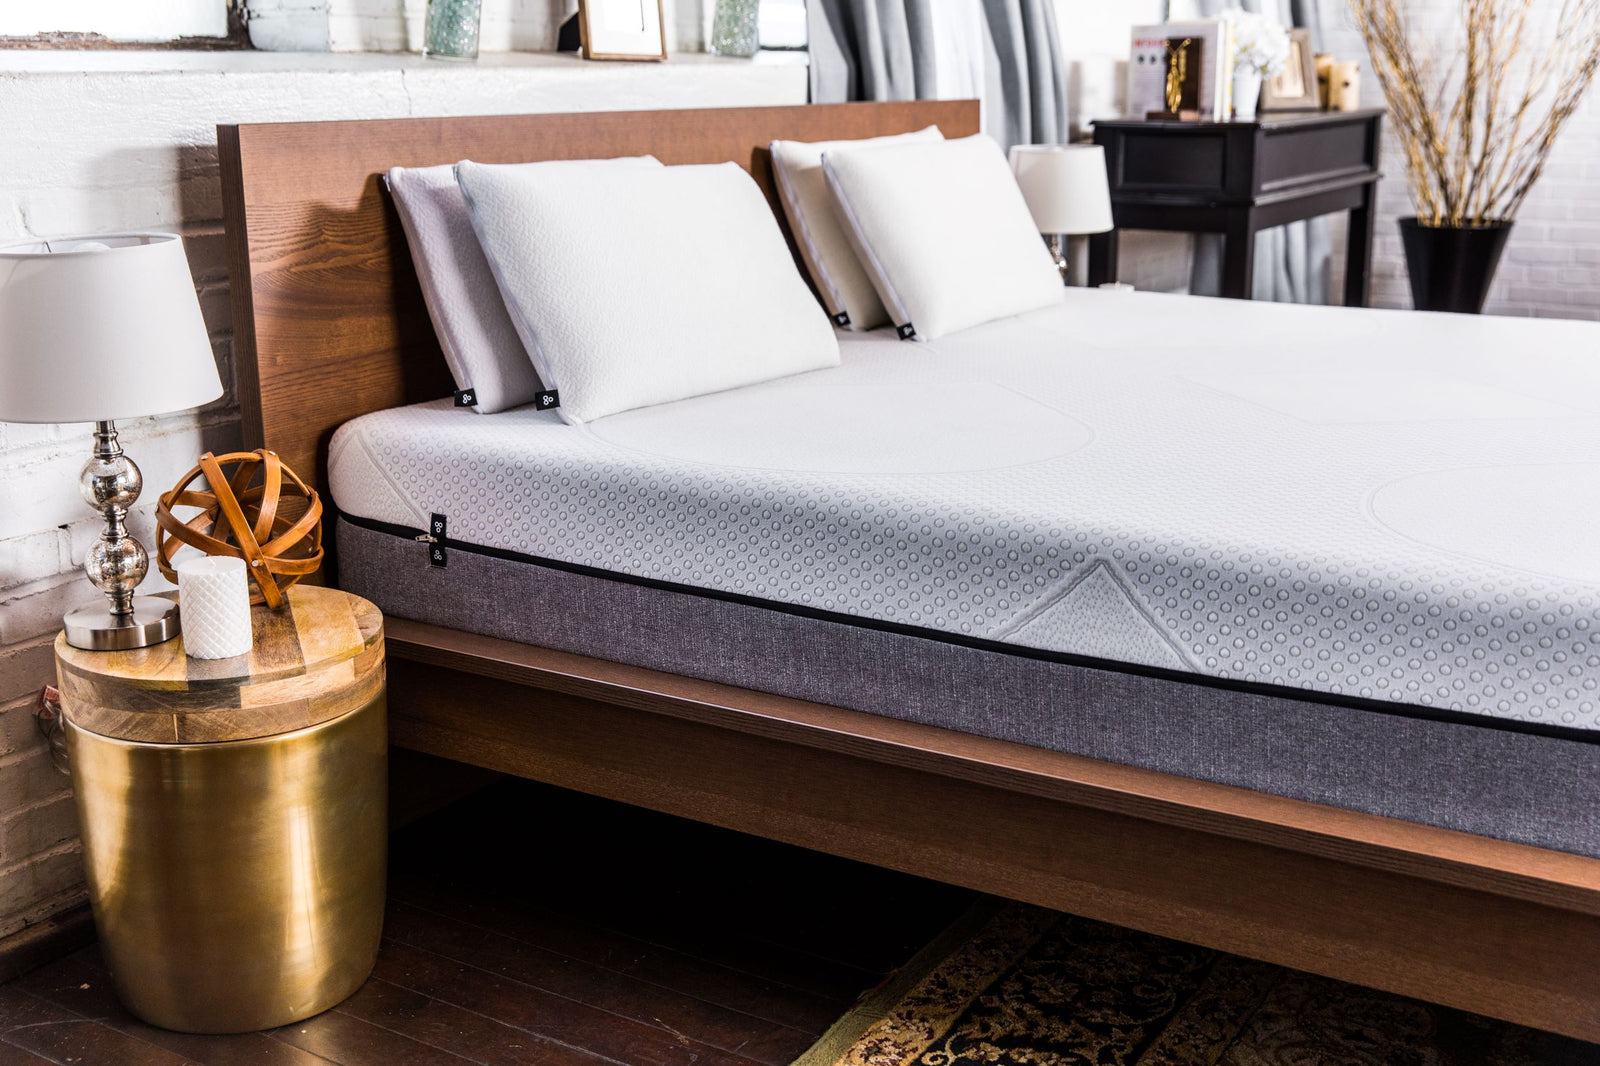 Queen Size Bed Dimensions Yogasleep